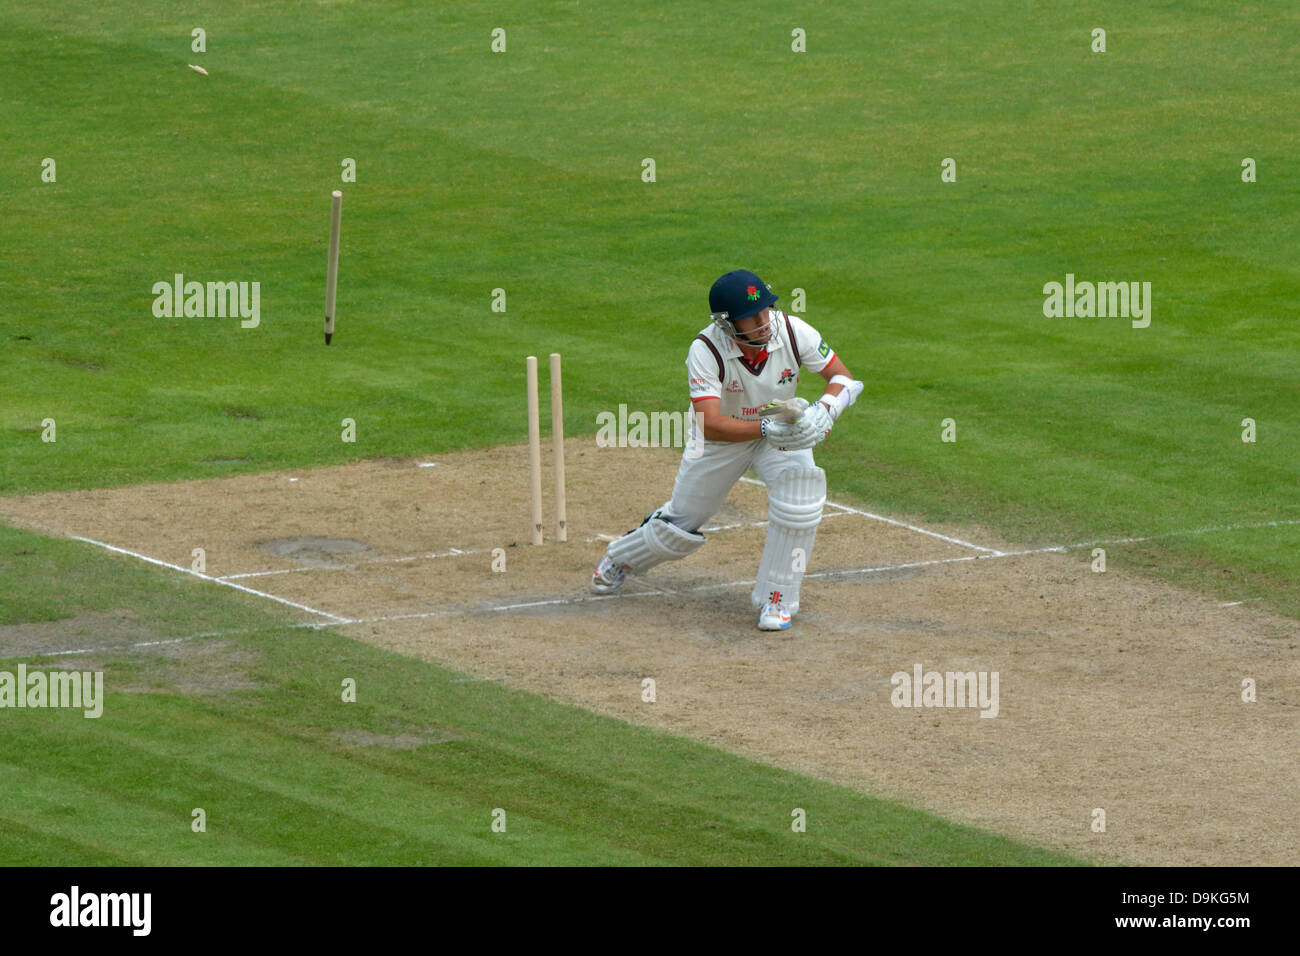 Manchester, UK. 21 June 2013 Emirates Old Trafford, Manchester, UK  Simon Kerrigan (Lancs) is bowled out by Azharullah - Stock Image